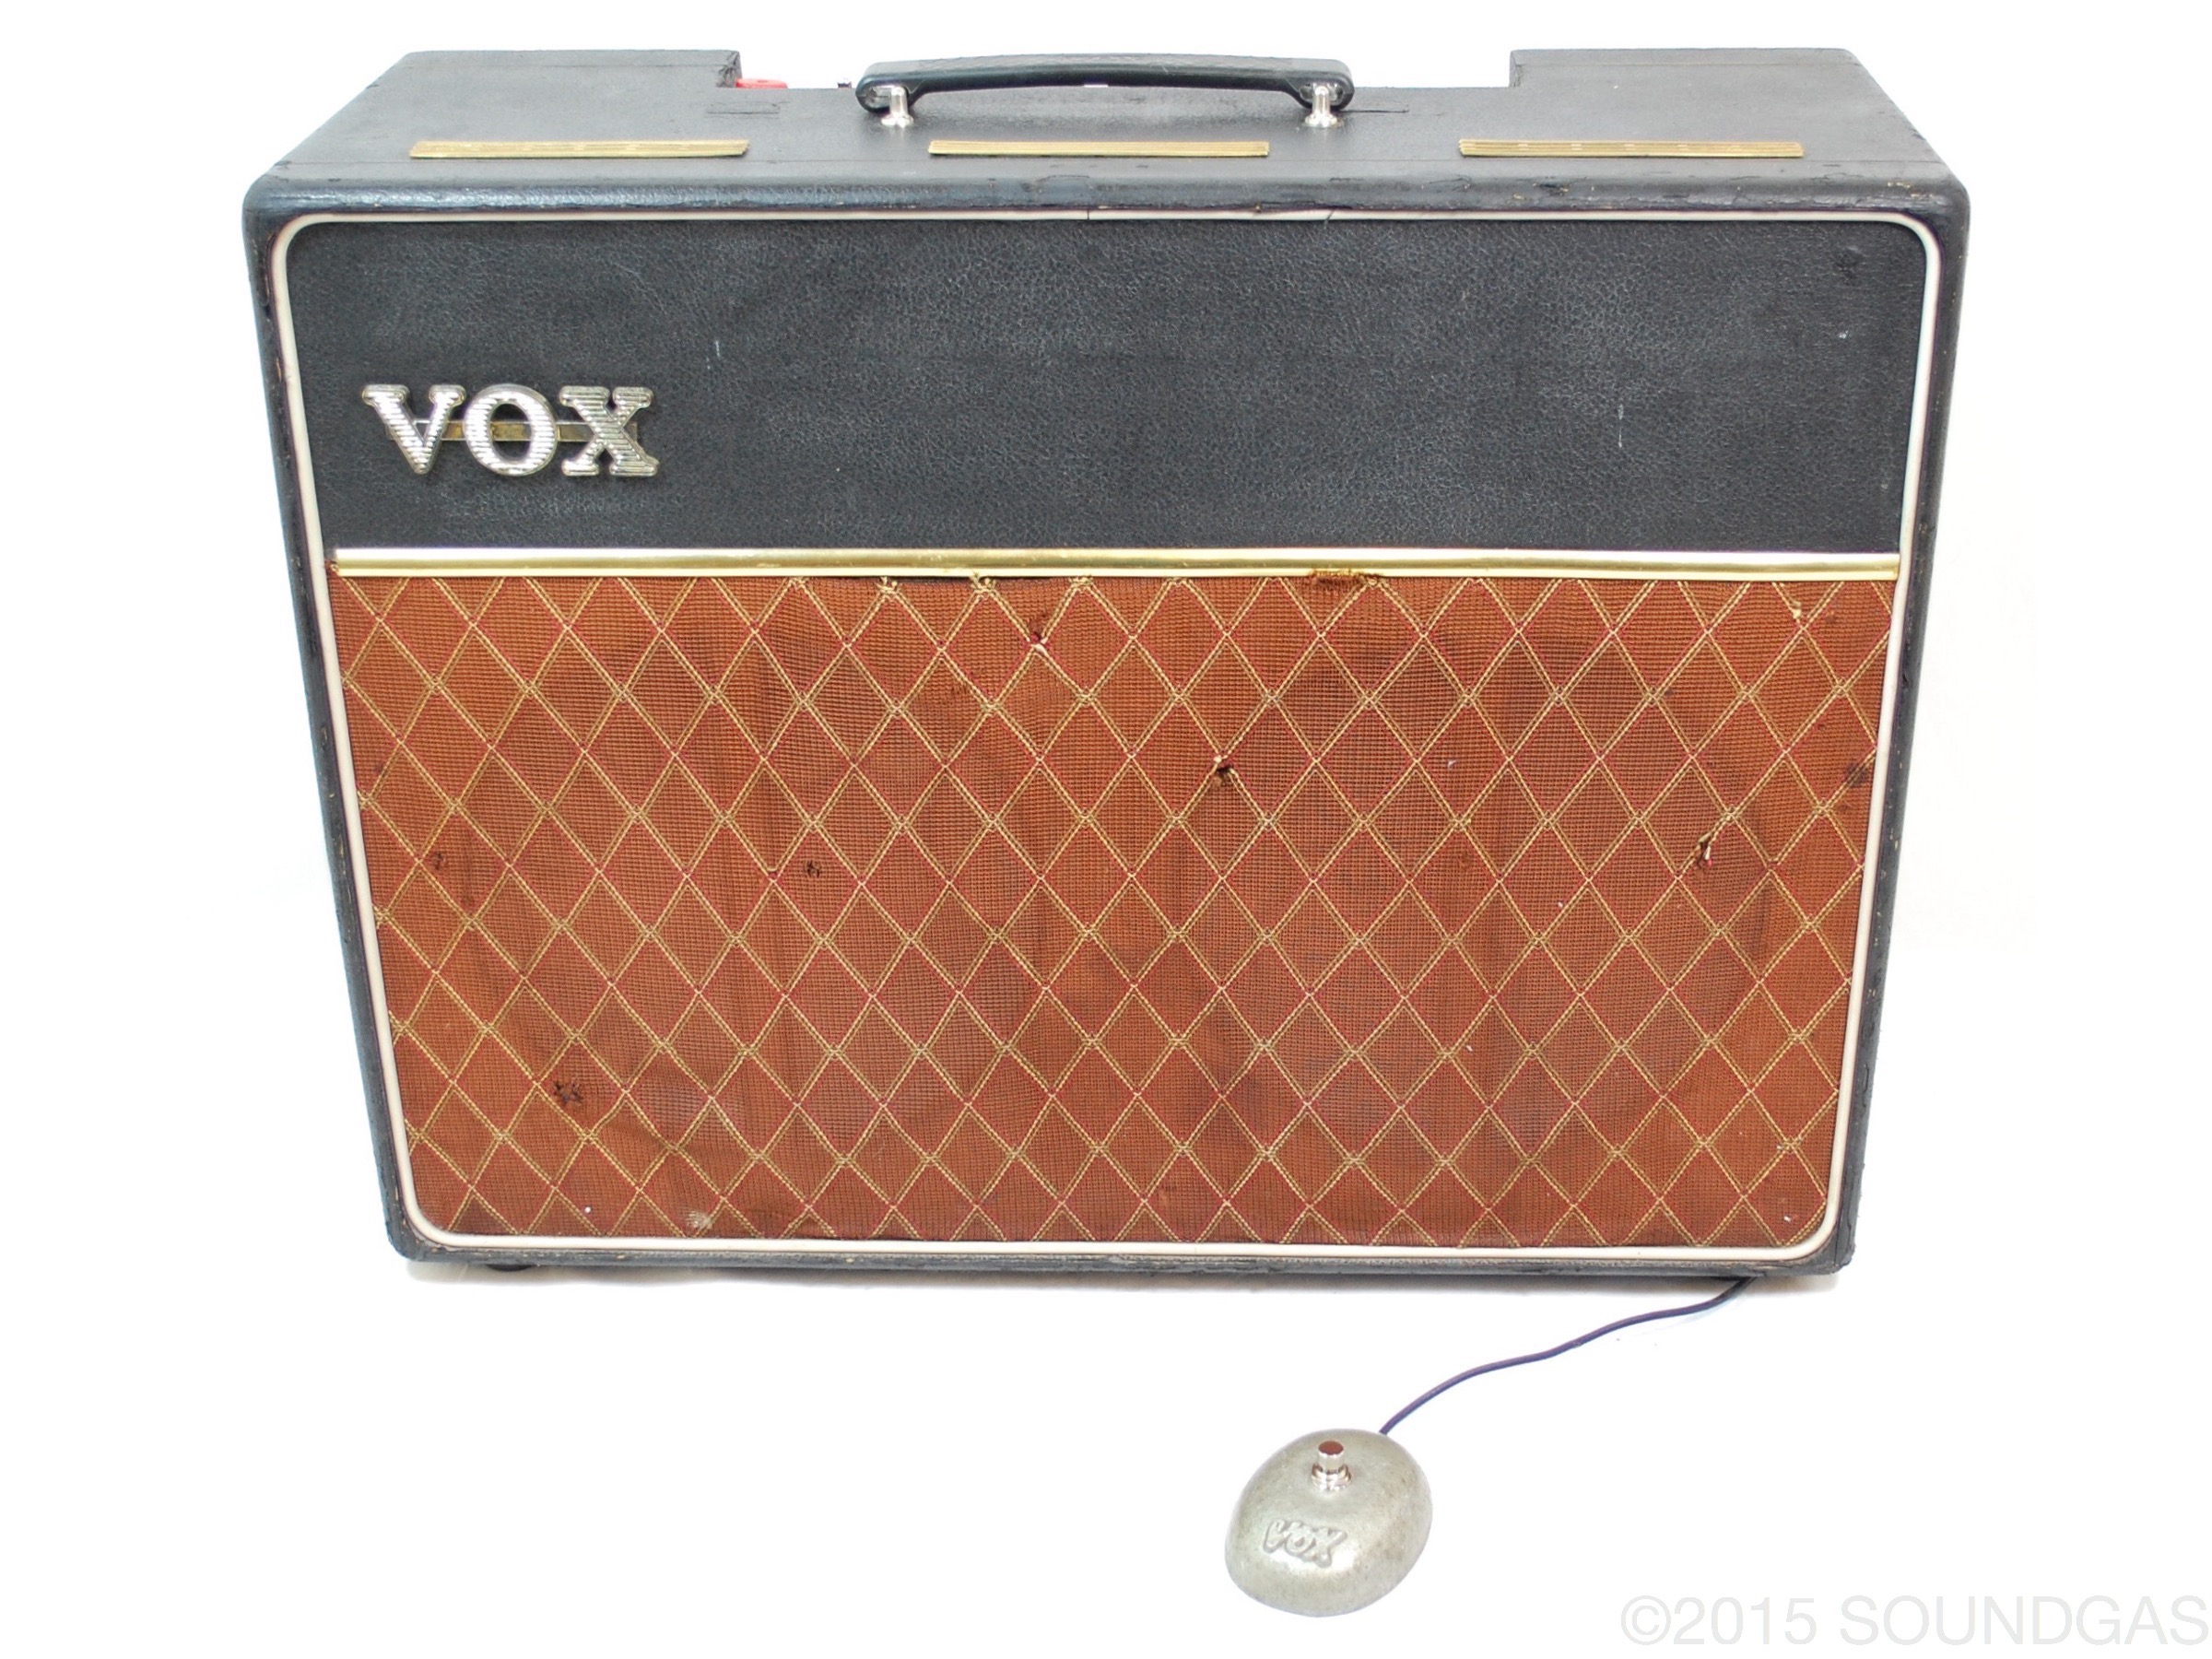 dating vox speakers So, the speaker in the image above would have been made by jensen (220) during the 27th week of 1951 or 1961 the year is confusing because it is only a single digit in later years, the eia converted to a 4 digit date code so the year could be easily identified there are 2 acceptable methods of displaying the eia date.